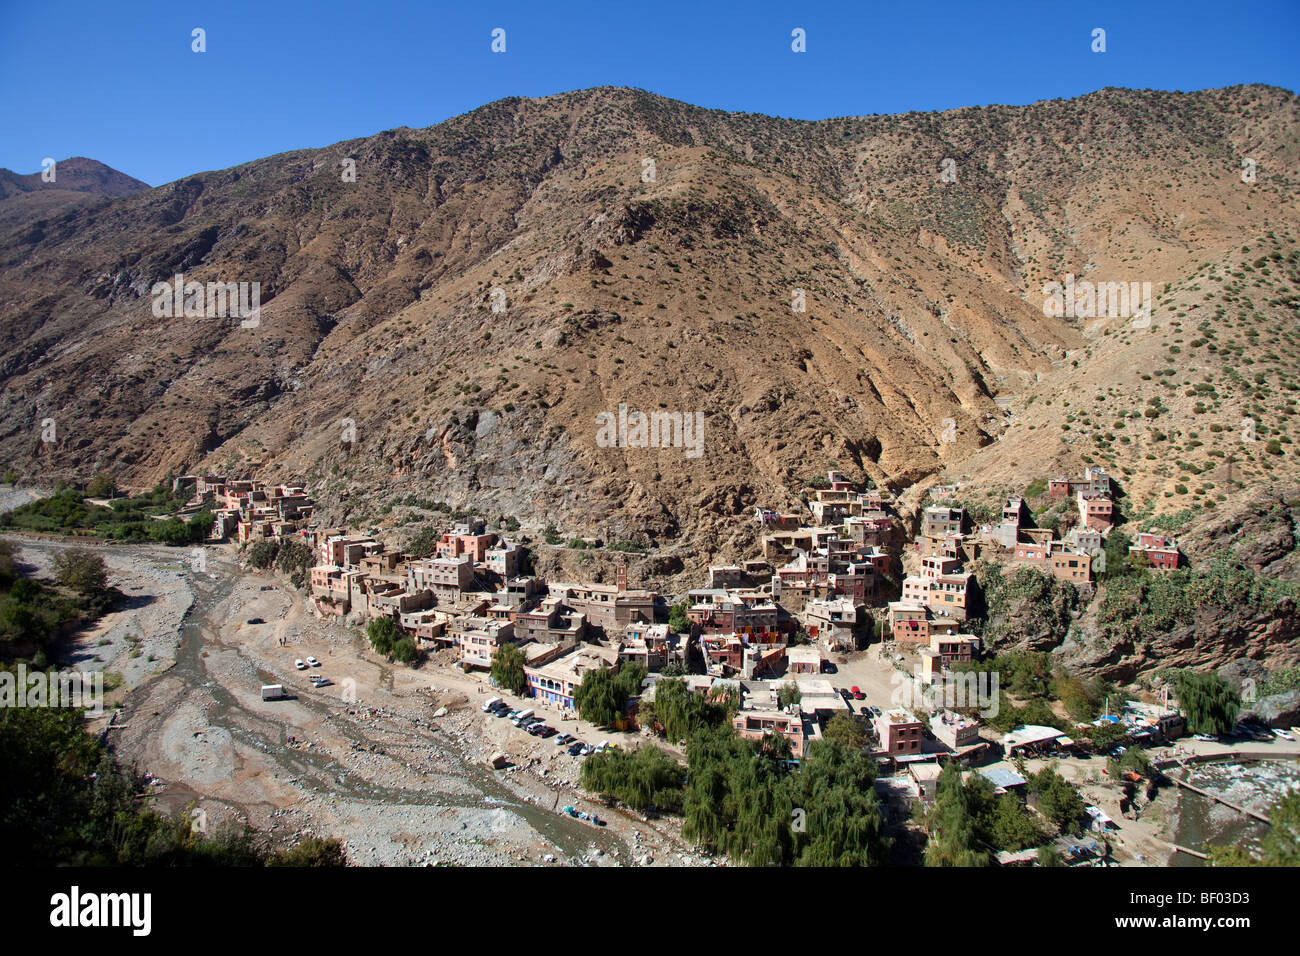 Setti Fatma berber village in Ourika Valley, High Atlas mountains 40km from Marrakesh, Morocco - Stock Image